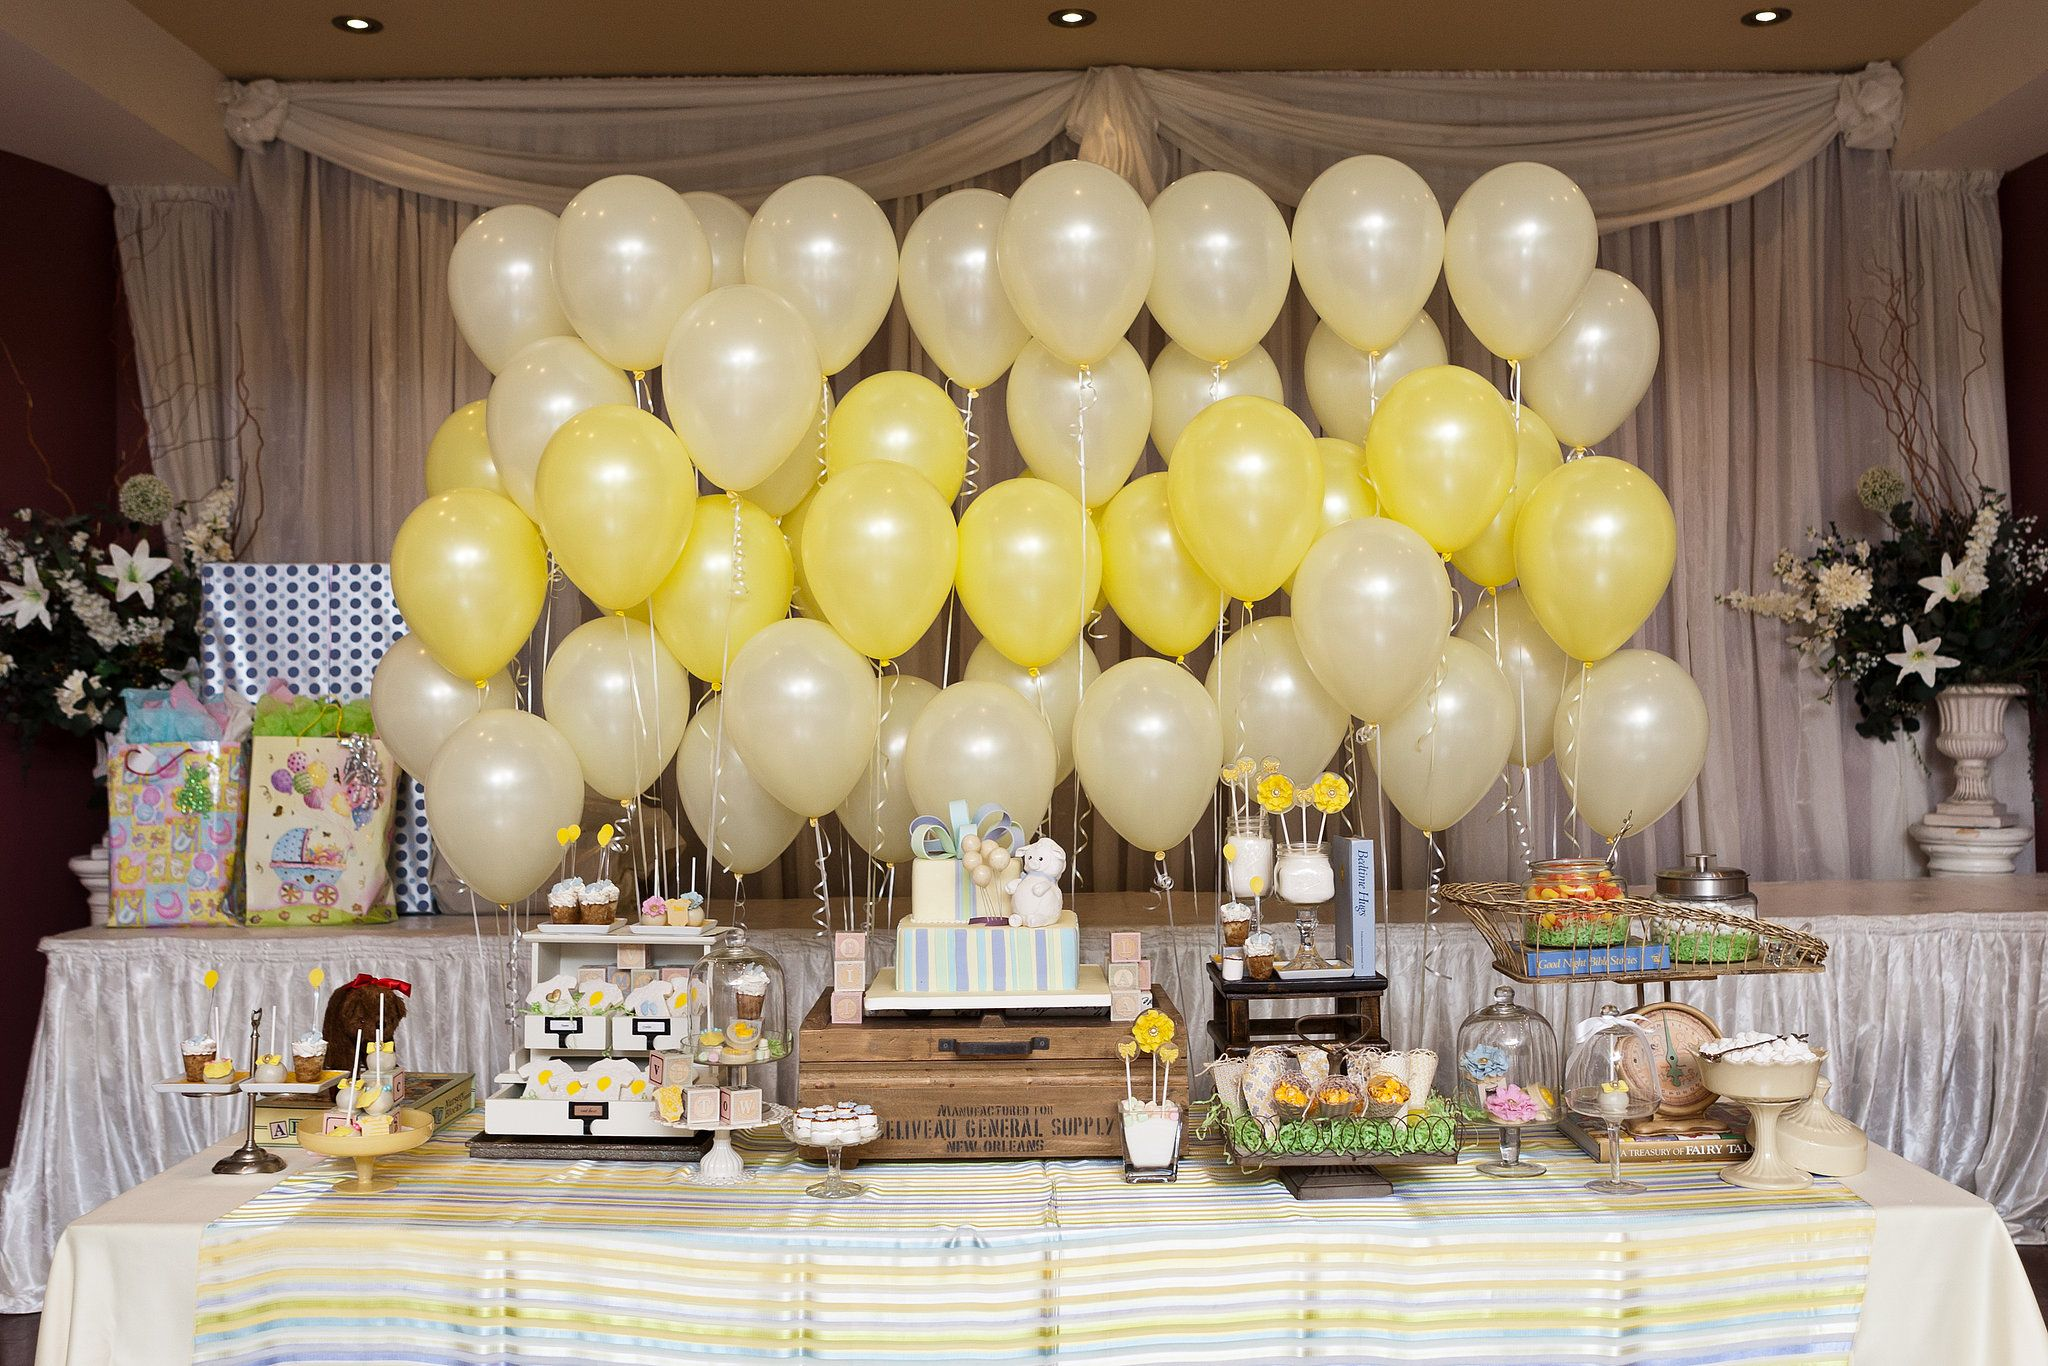 Ombré Balloon Backdrop | Balloon backdrop, Party backdrops and ...